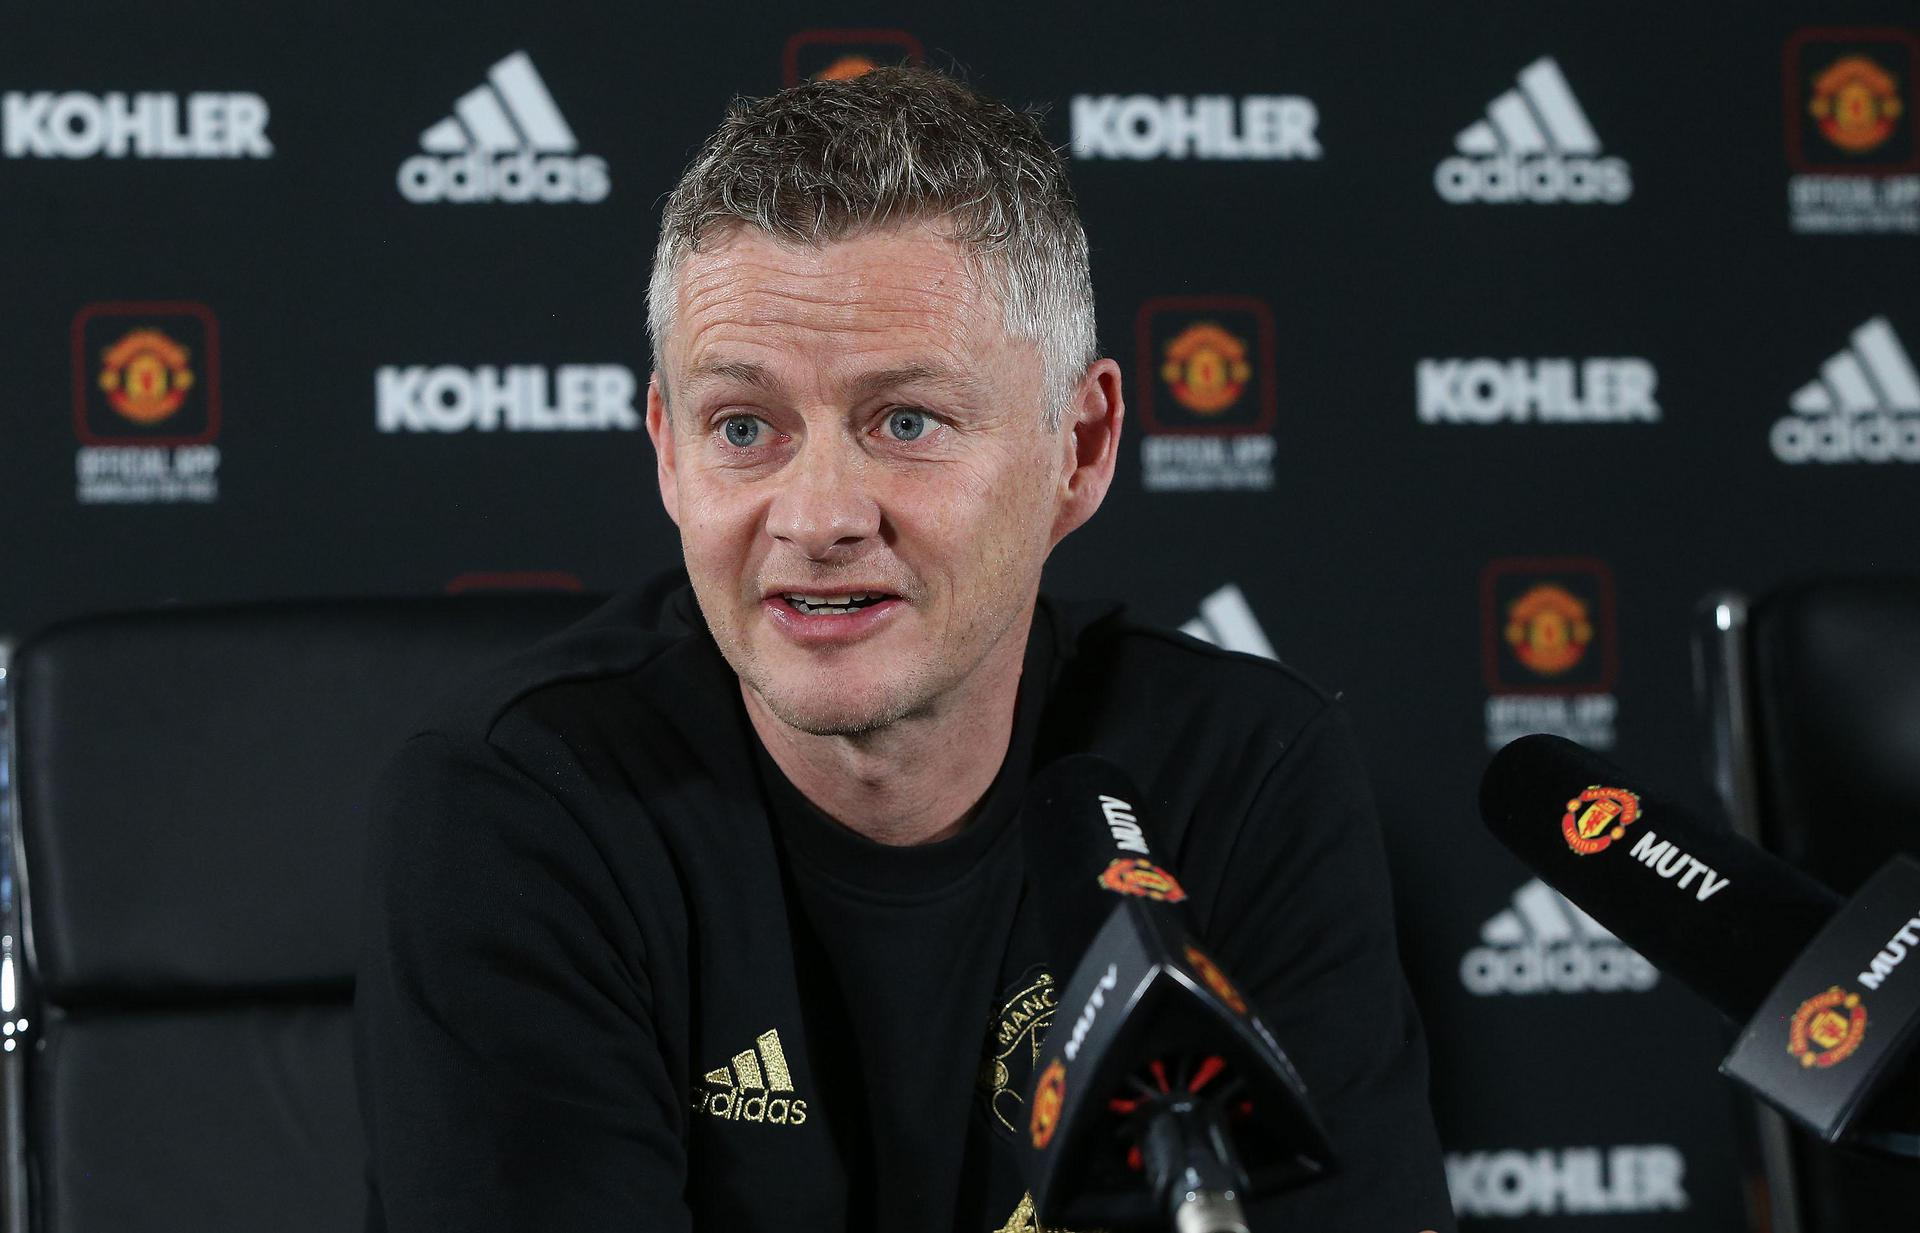 Ole Gunnar Solskjaer in his press conference.